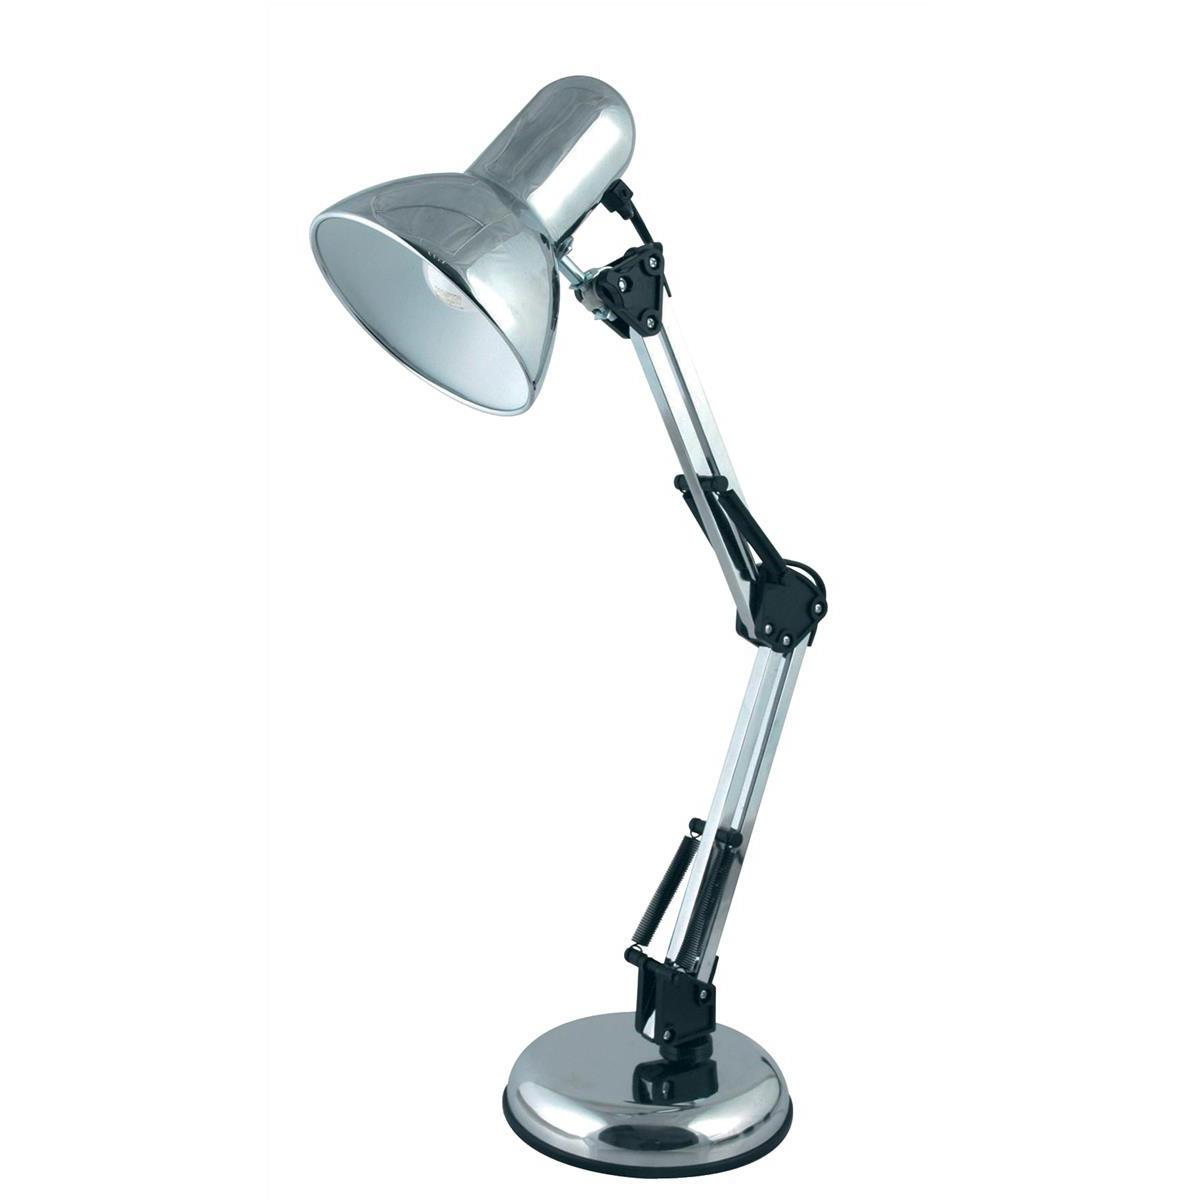 Desk Lamp Adjustable Arm 40W Maximum Height of 520mm Base Size of 150x150x40mm Polished Chrome